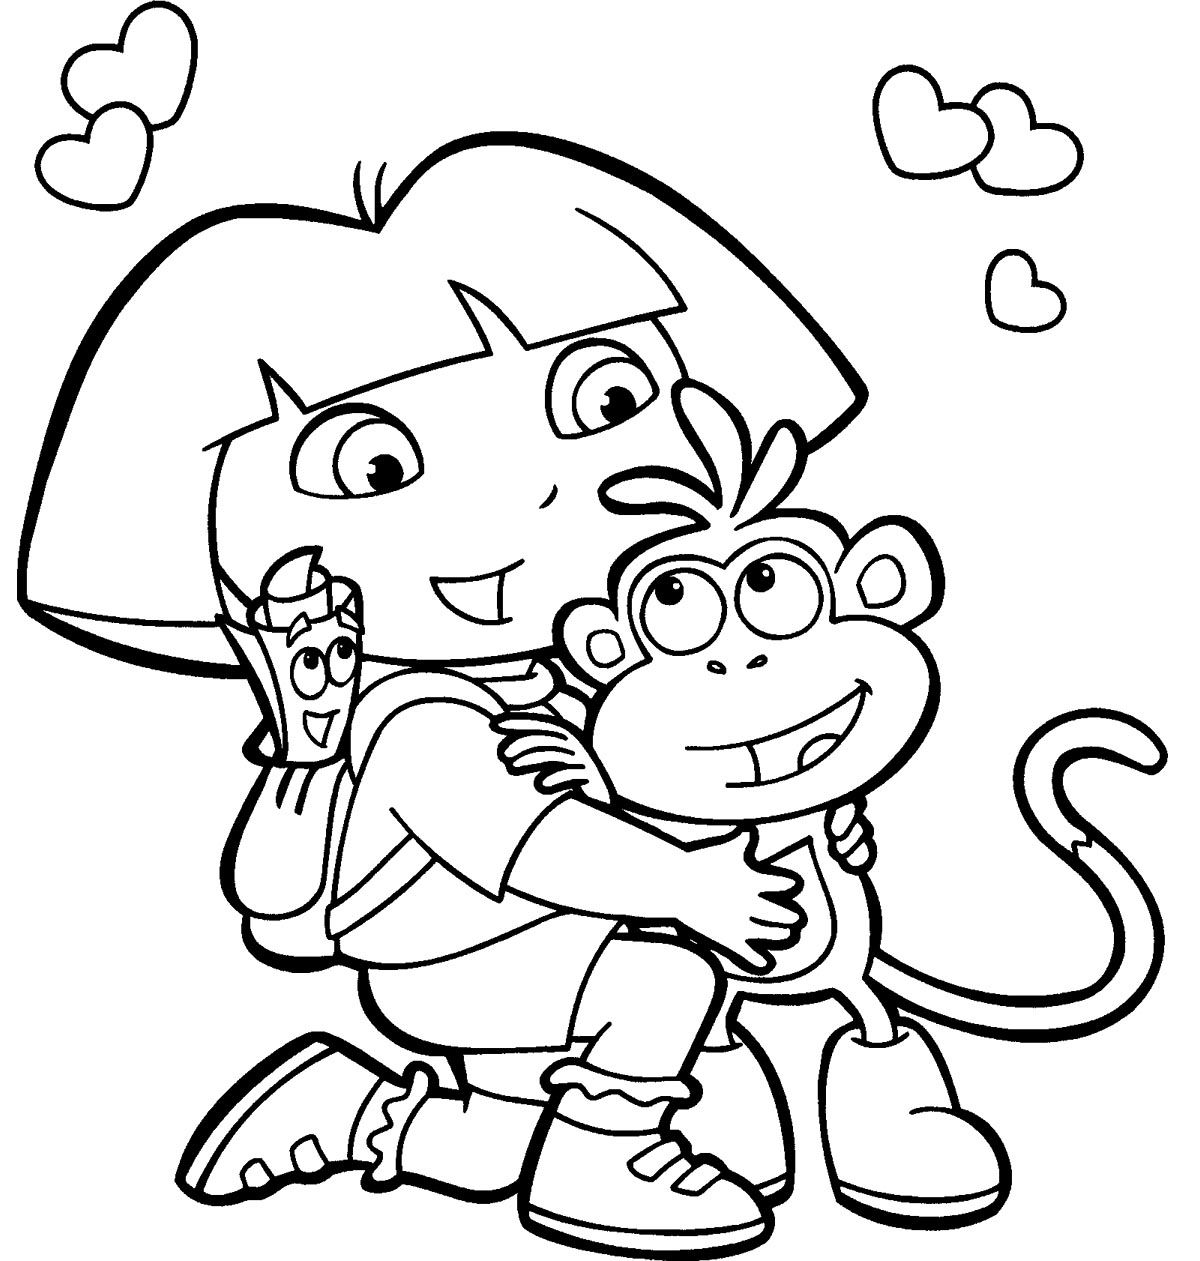 Dora coloring pages printable dora coloring pages free for Coloring pages online